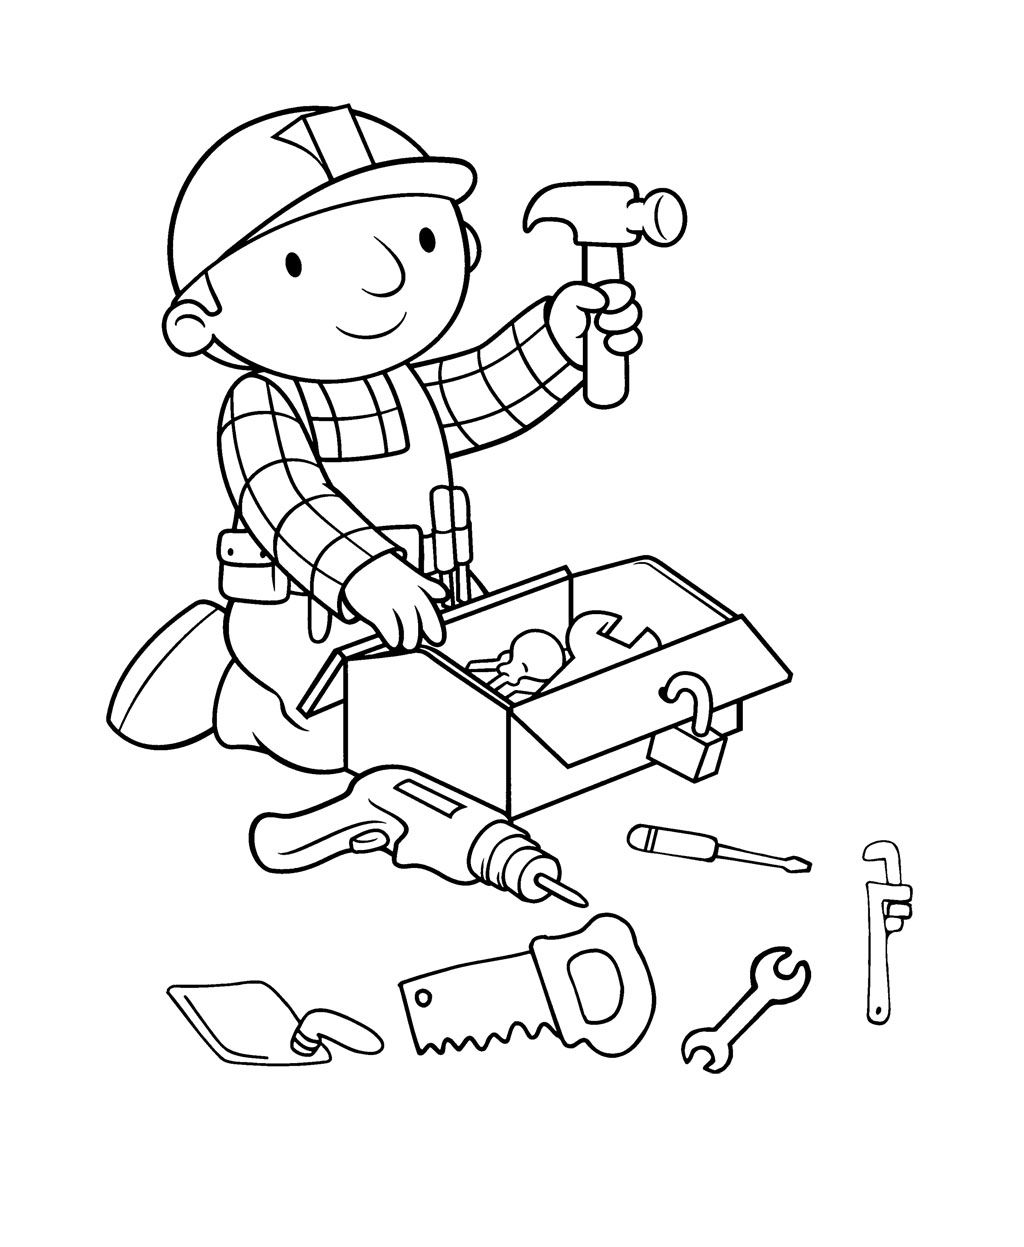 Bob The Builder Preparing Tools Coloring Page For Kids